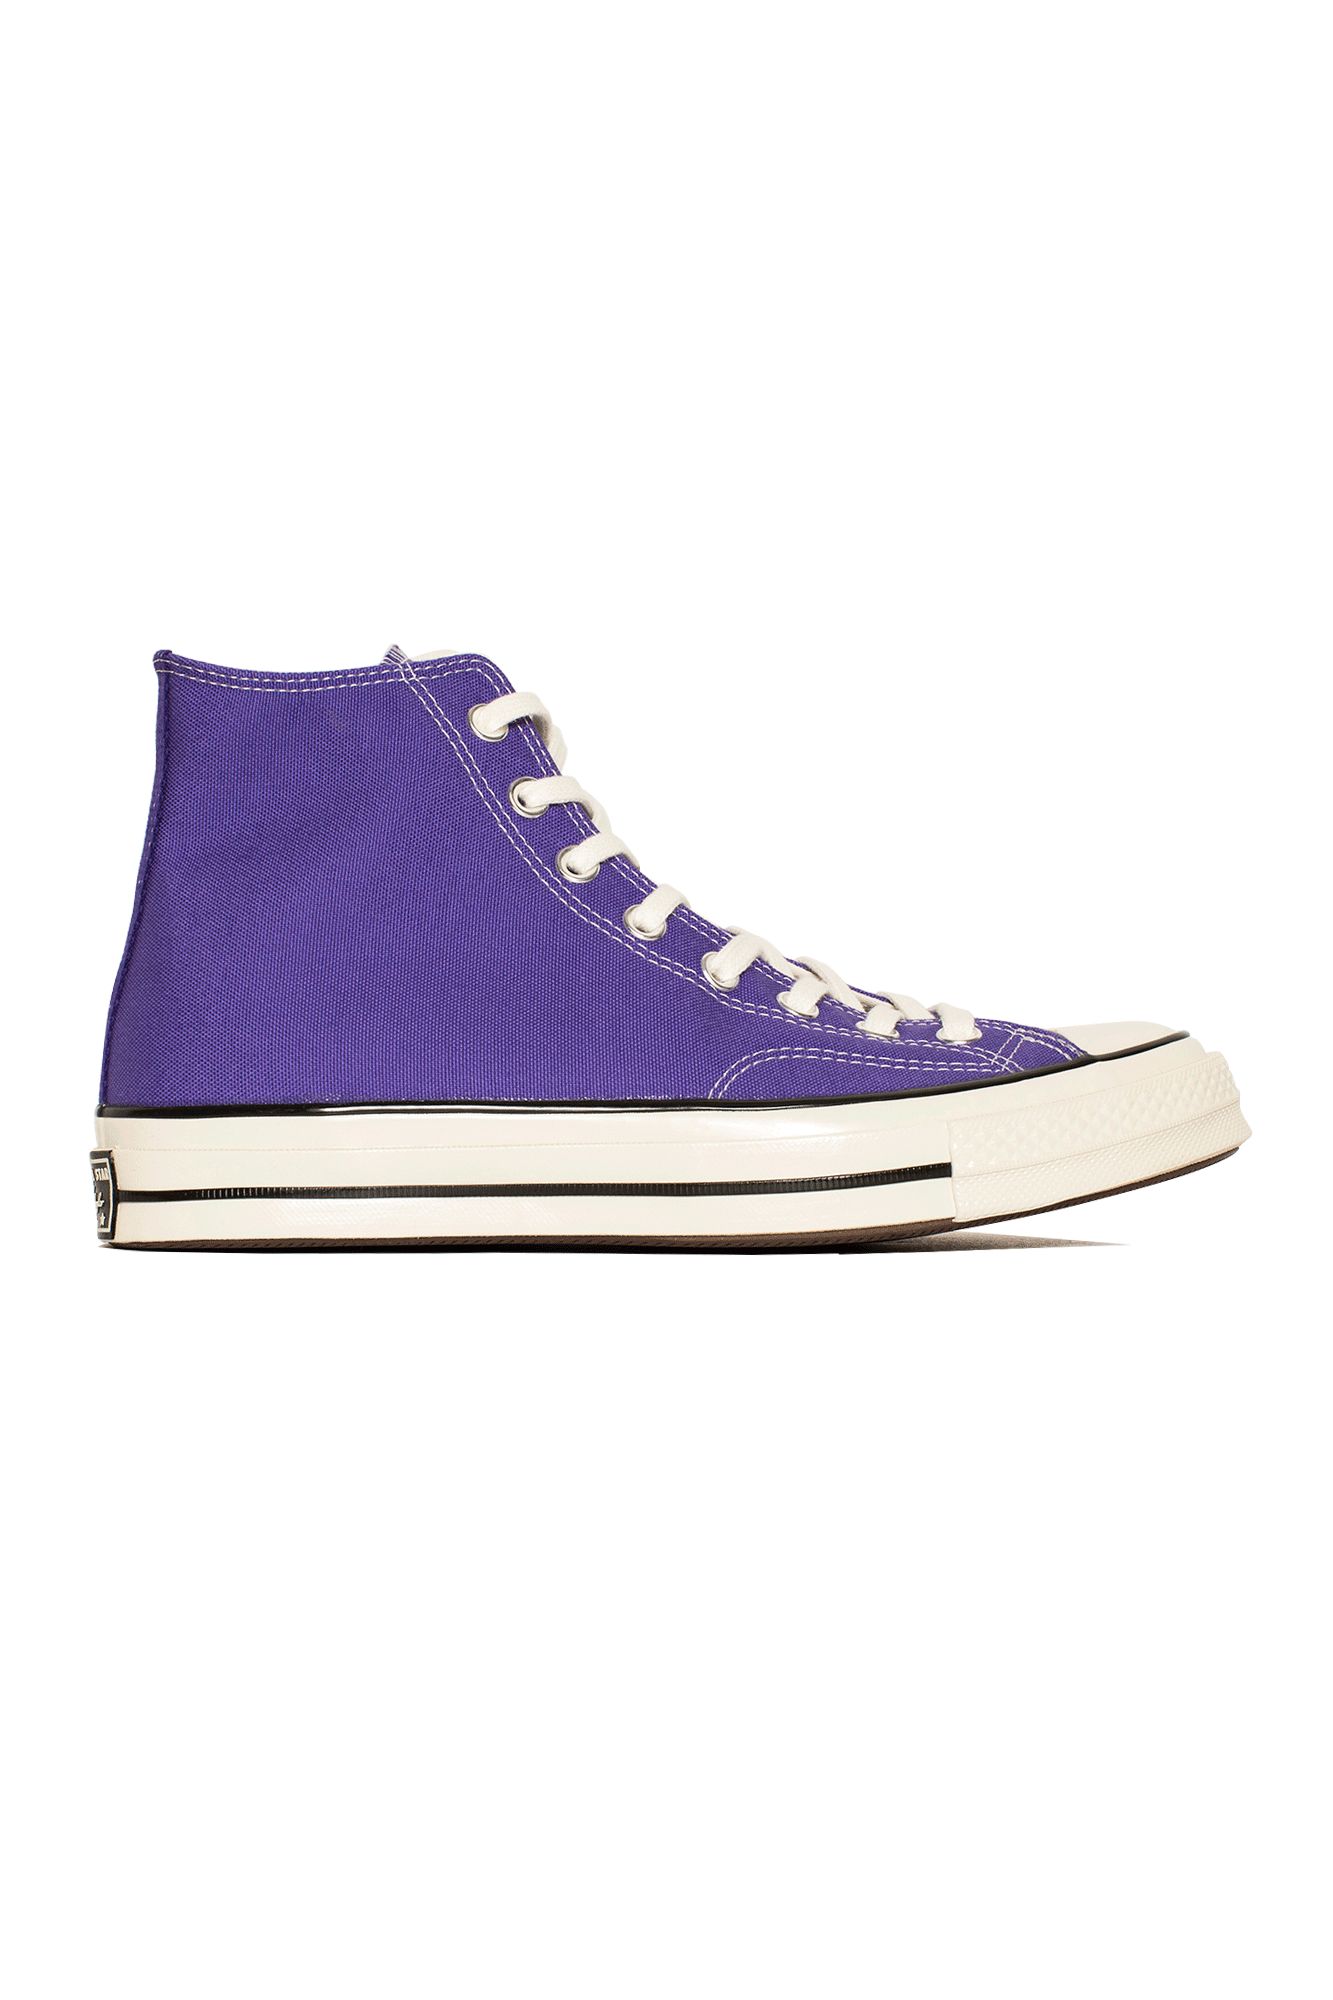 Chuck 70 HI Purple